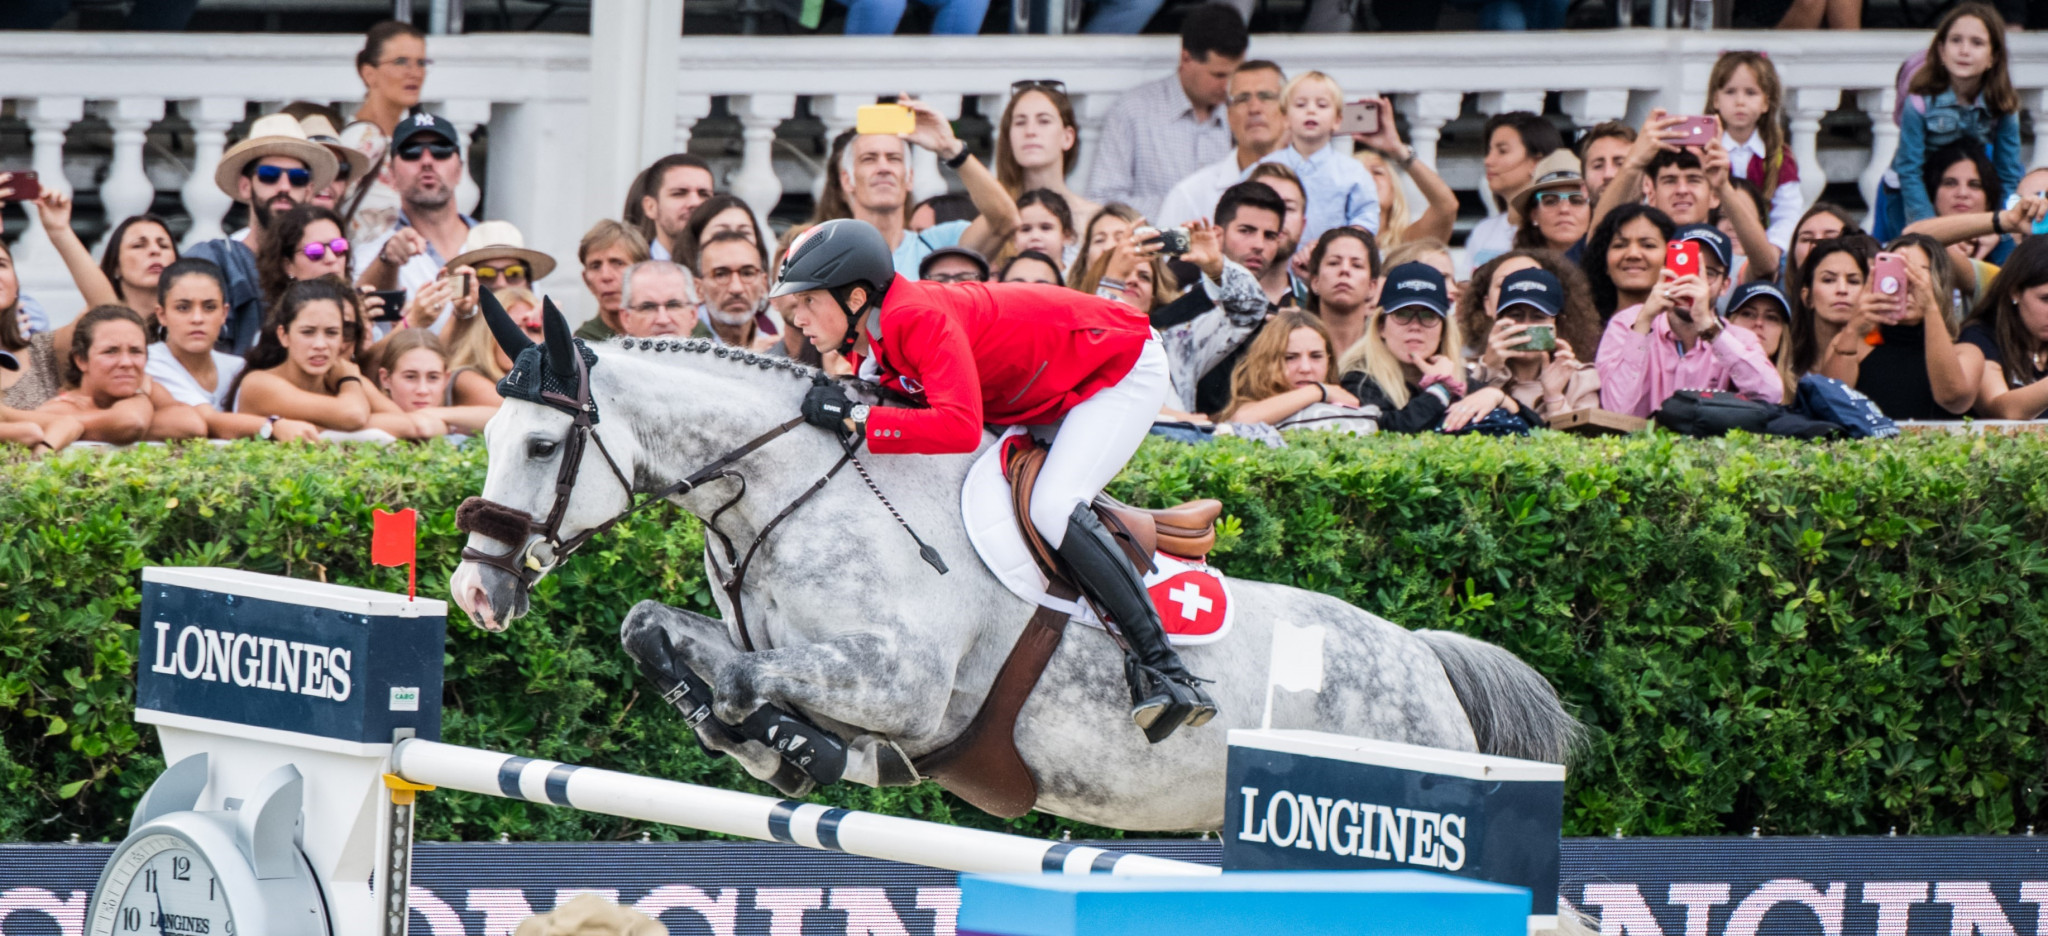 FEI confirms cancellation of 2020 Jumping Nations Cup Final